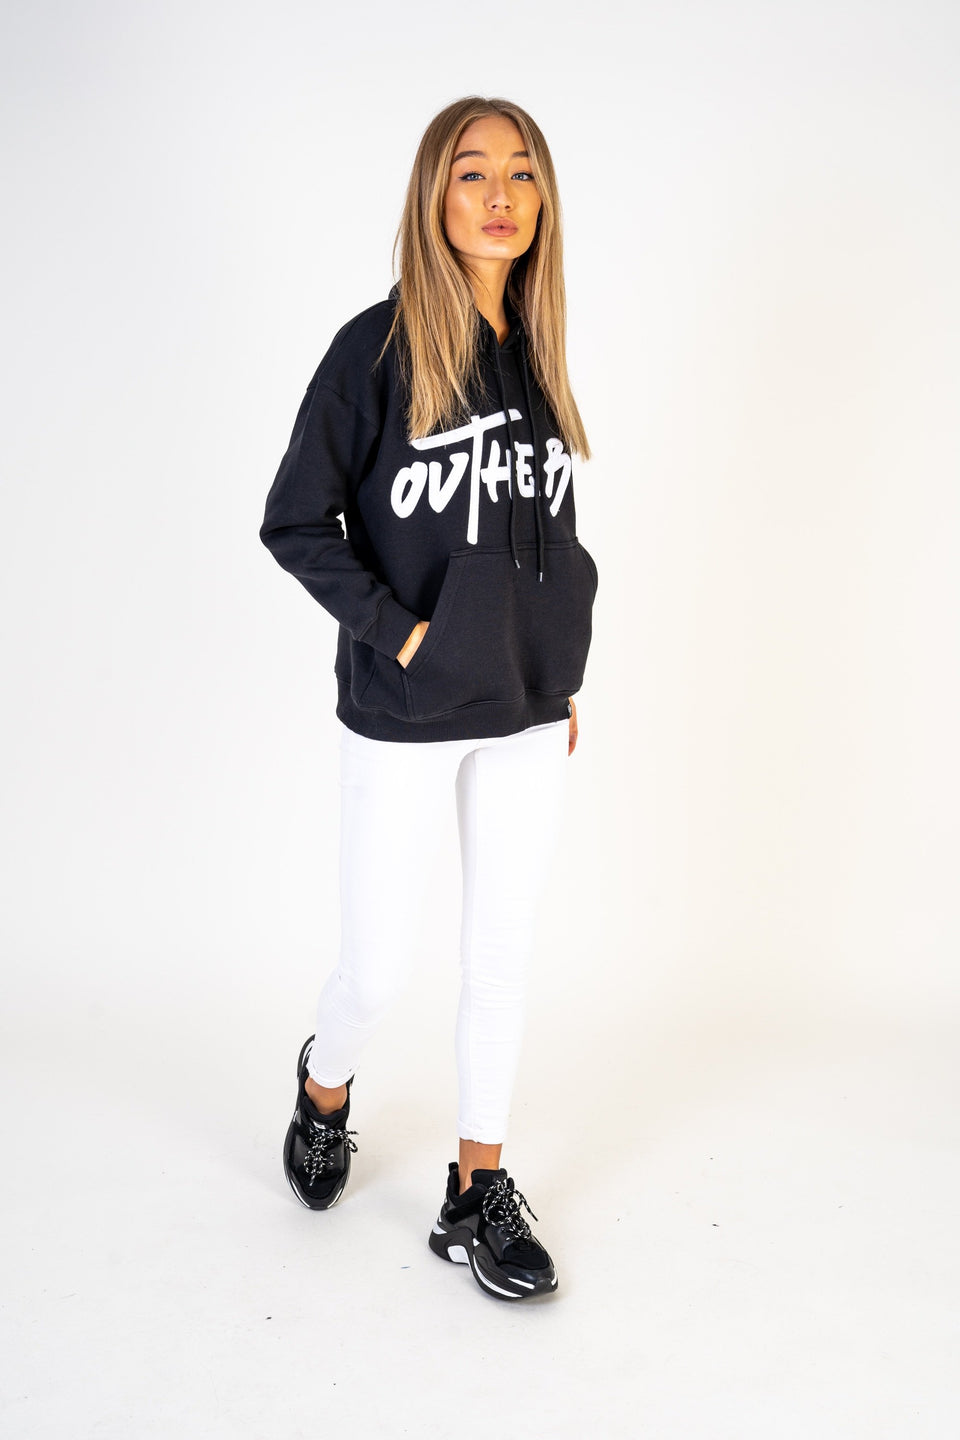 Women's Black Comfort Hoodies